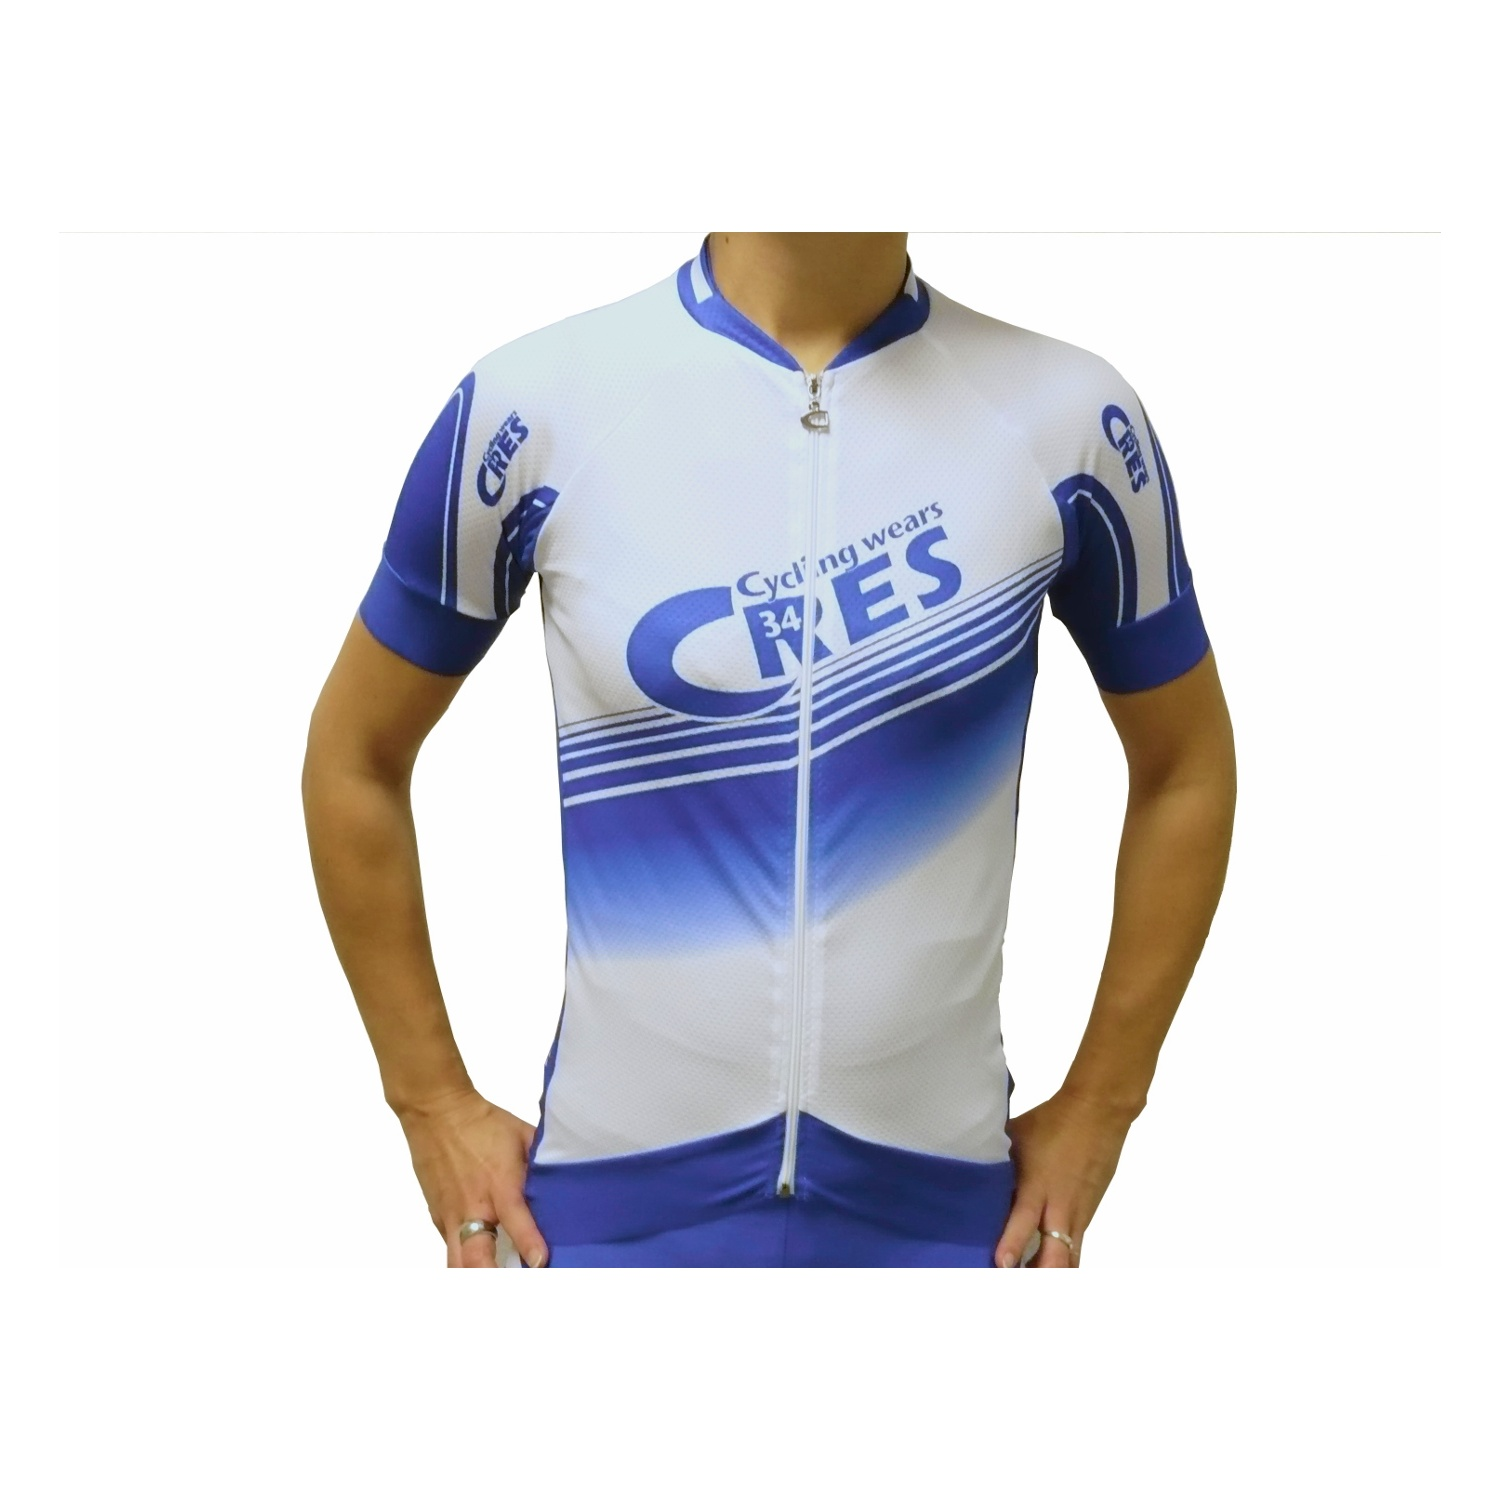 04_maillot_elite_lady